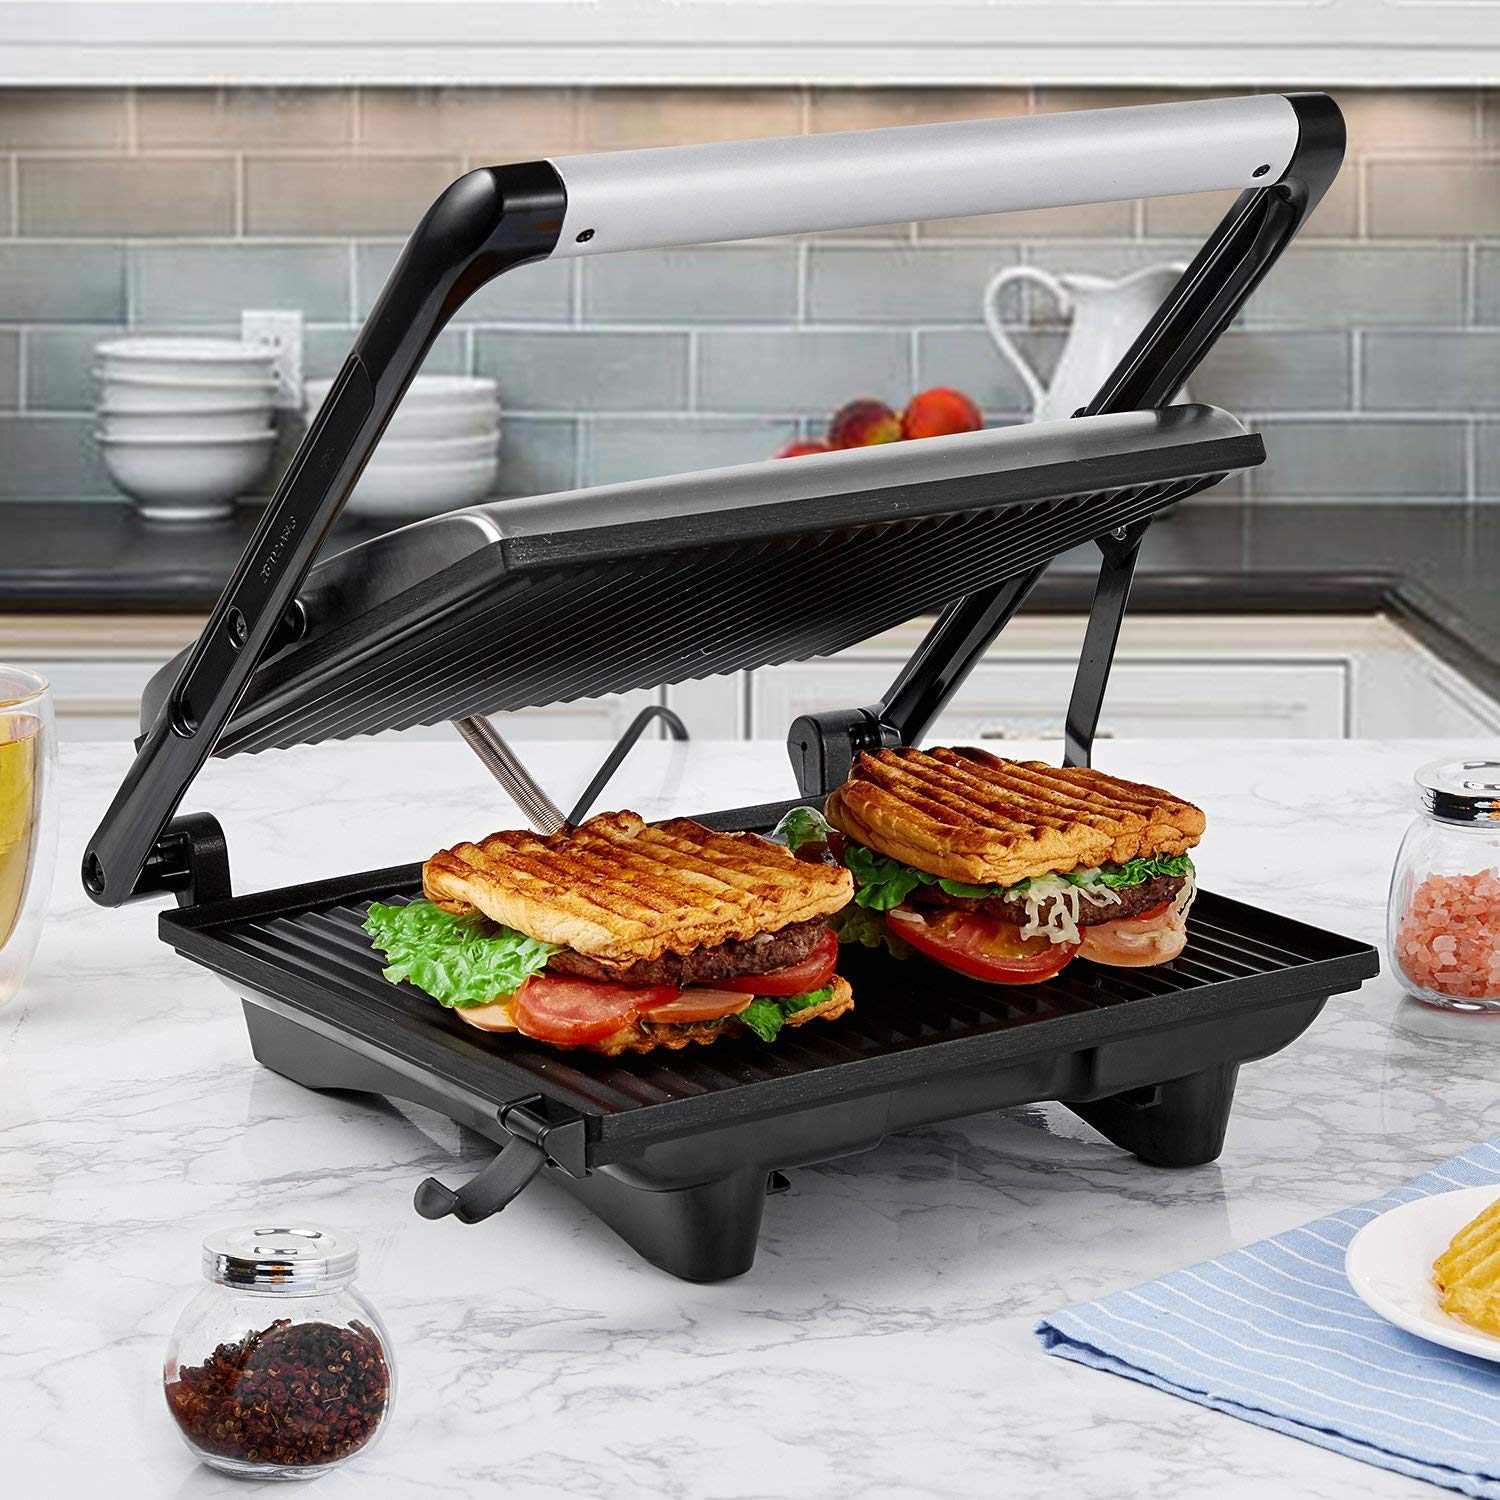 Panini Press Gourmet Sandwich Maker, 4-Slice Extra Large Panini Press Grill with Non-Stick Coated Plates and Removable Drip Tray, Stainless Steel, 1200W by AICOK